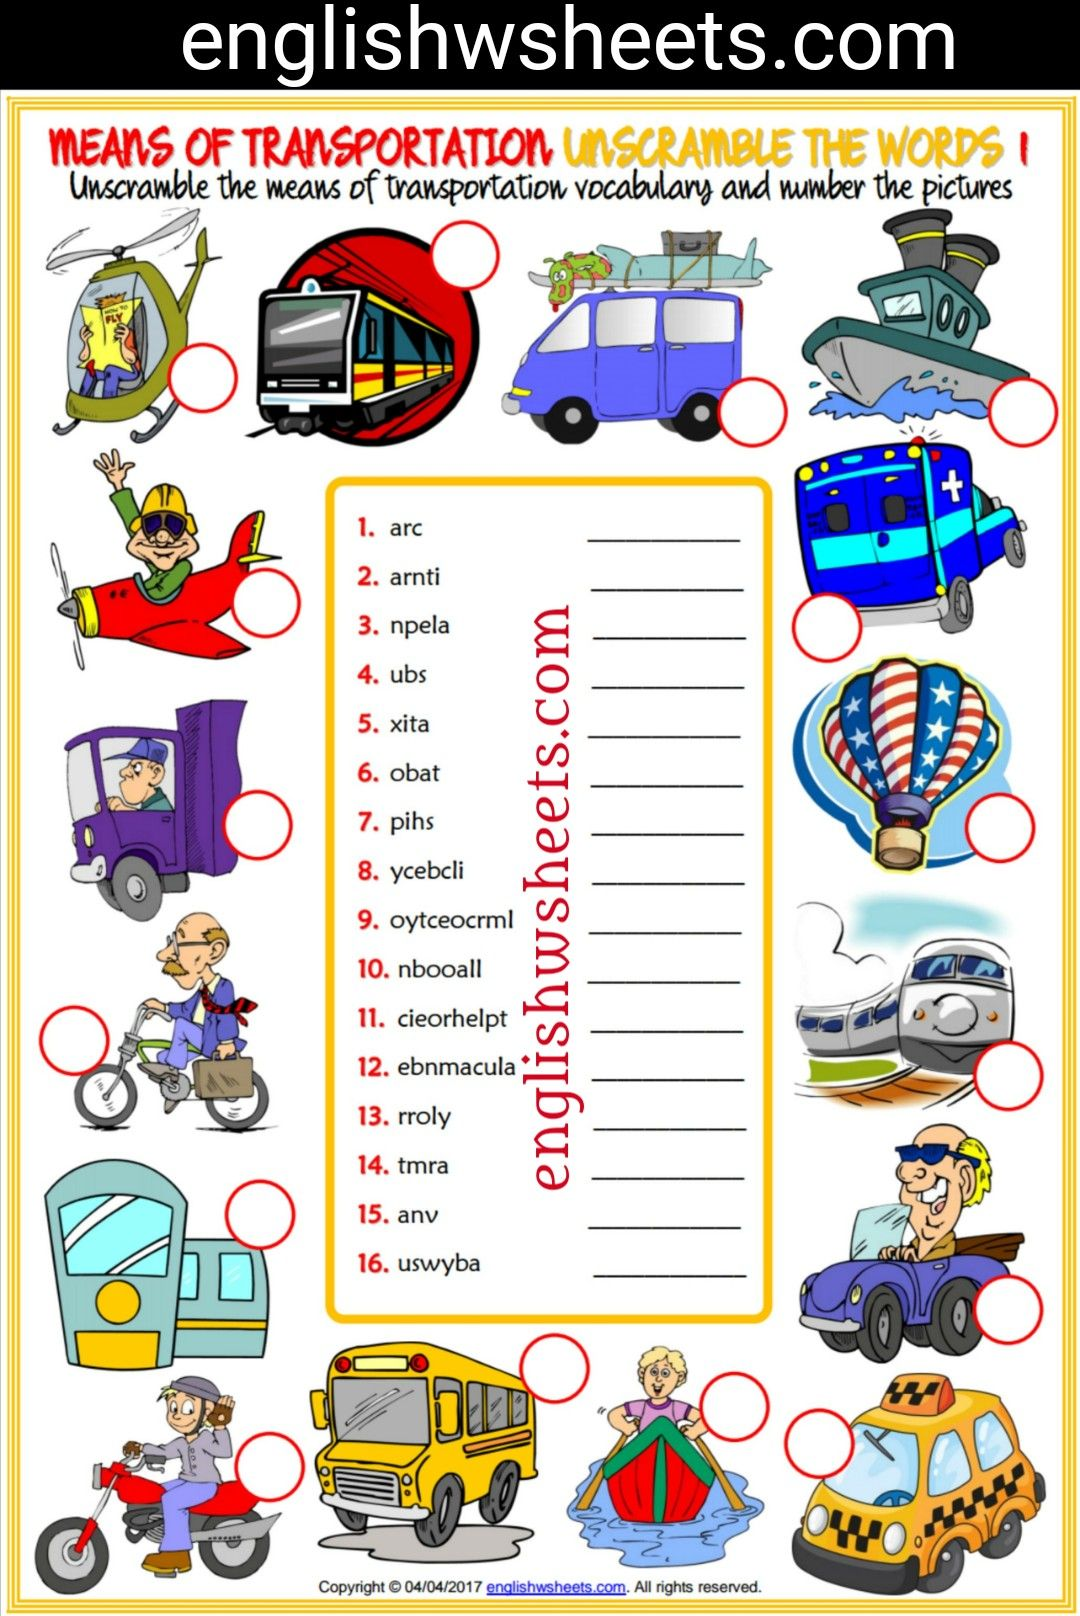 Means Of Transportation Esl Printable Unscramble The Words